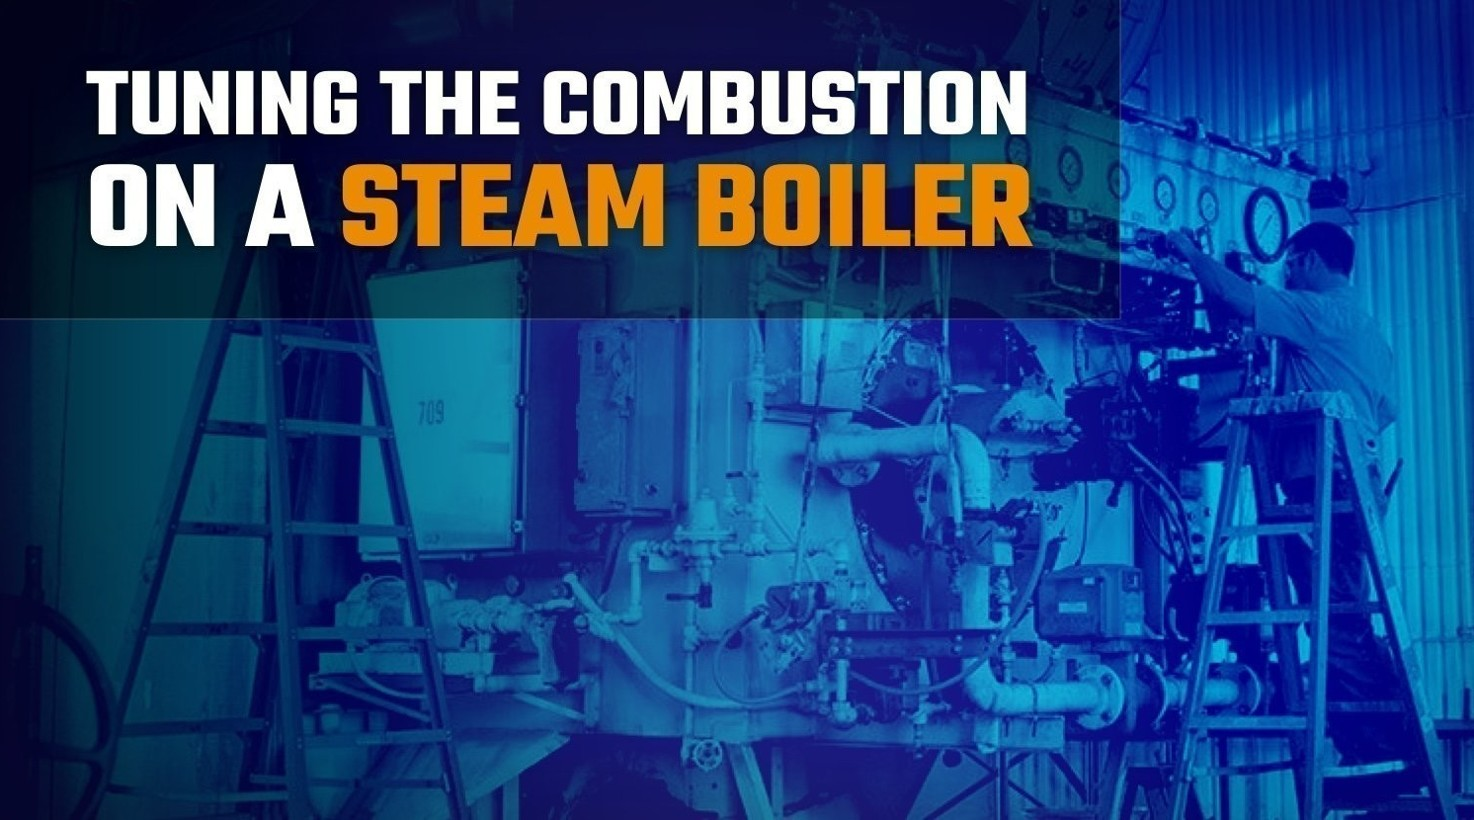 Tuning the Combustion on a Steam Boiler